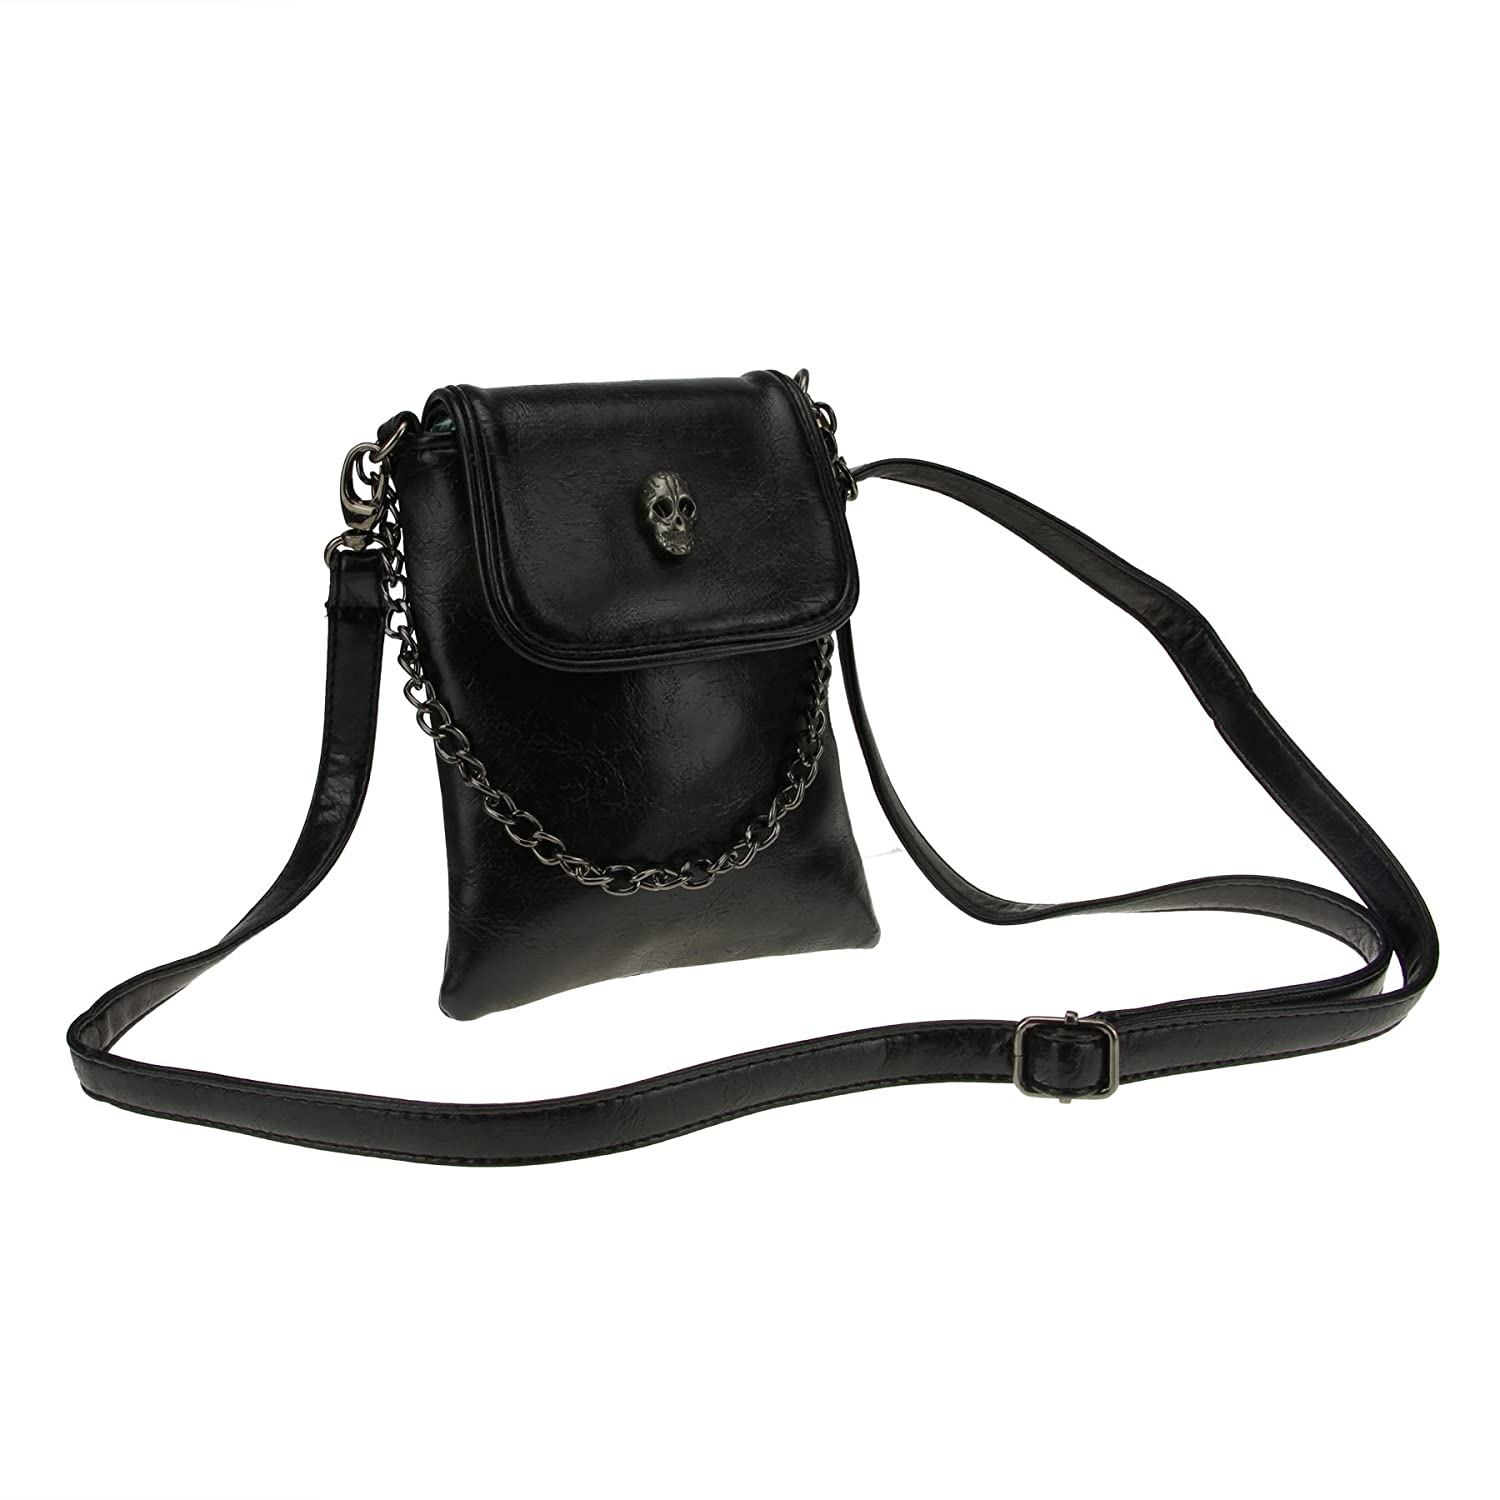 Fakeface Vintage Black PU Leather Shoulder Bags Crossbody Bags Small Portable Cell Phone Holder Wallet Purse Coin Pouches Clutch for Women Teen Girls